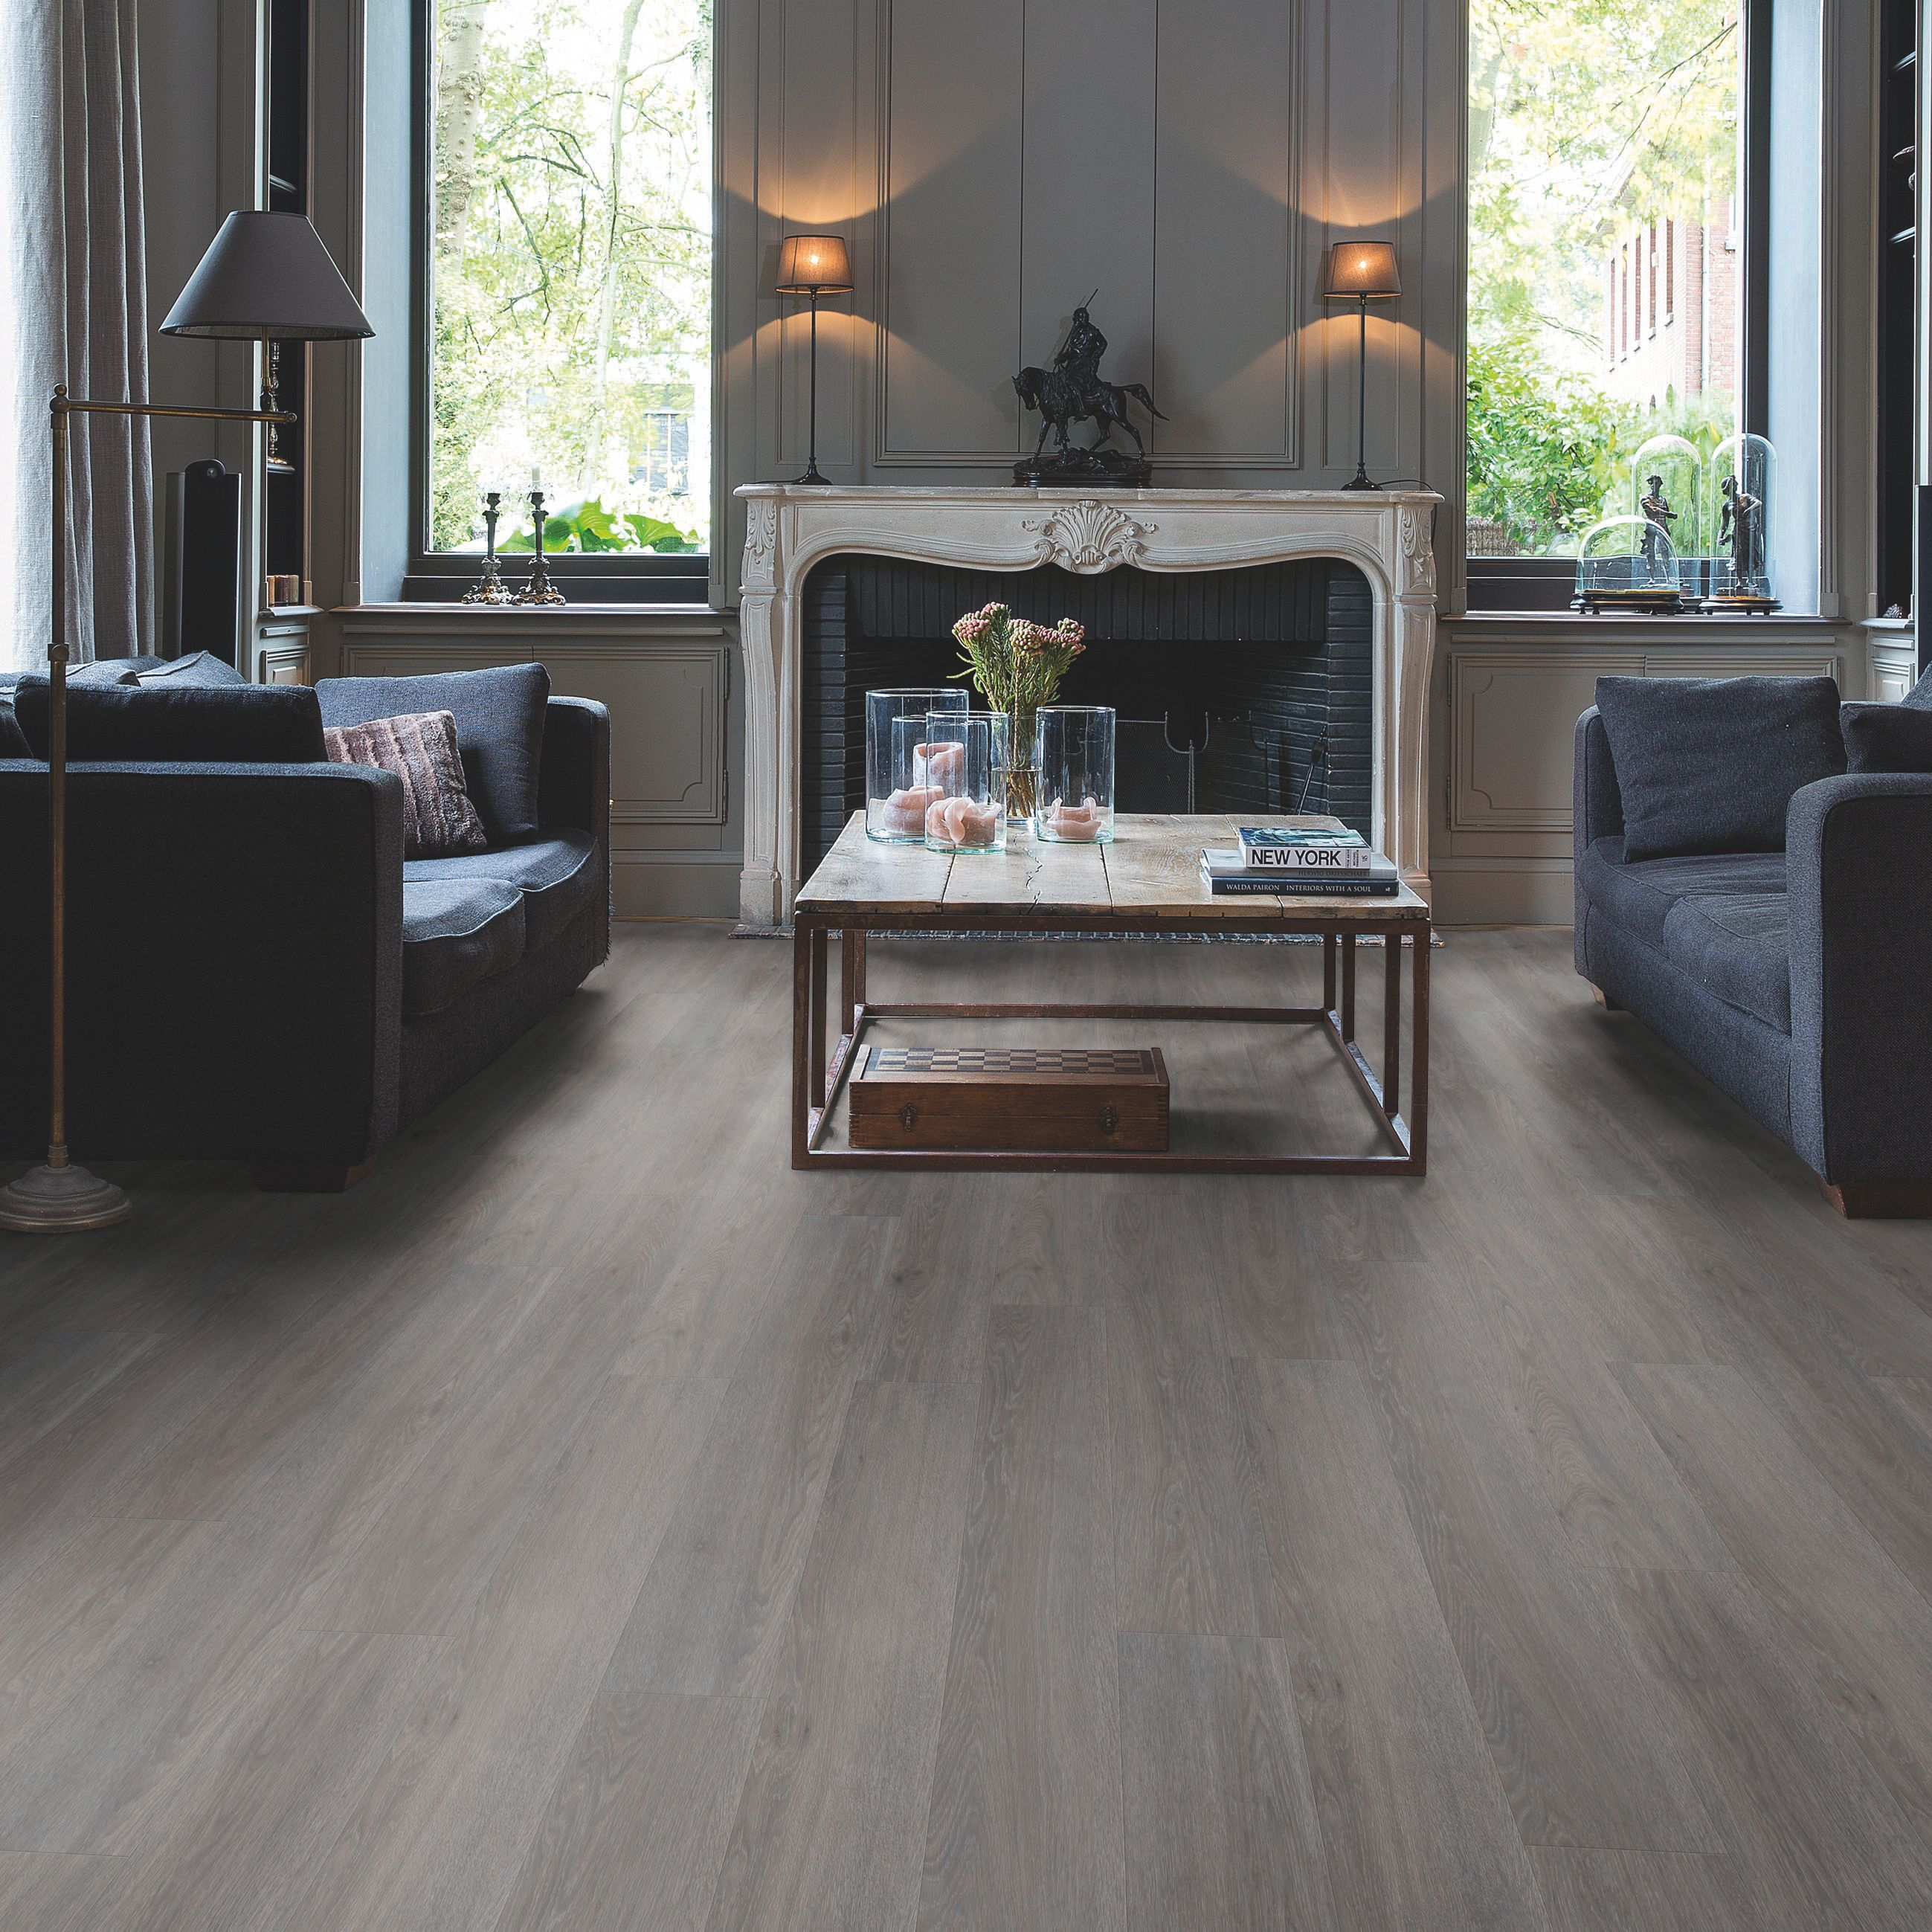 Step paso dark grey oak effect waterproof luxury vinyl flooring tile quick step paso dark grey oak effect waterproof luxury vinyl flooring tile m pack bq for all your home and garden supplies and advice on all the latest dailygadgetfo Choice Image